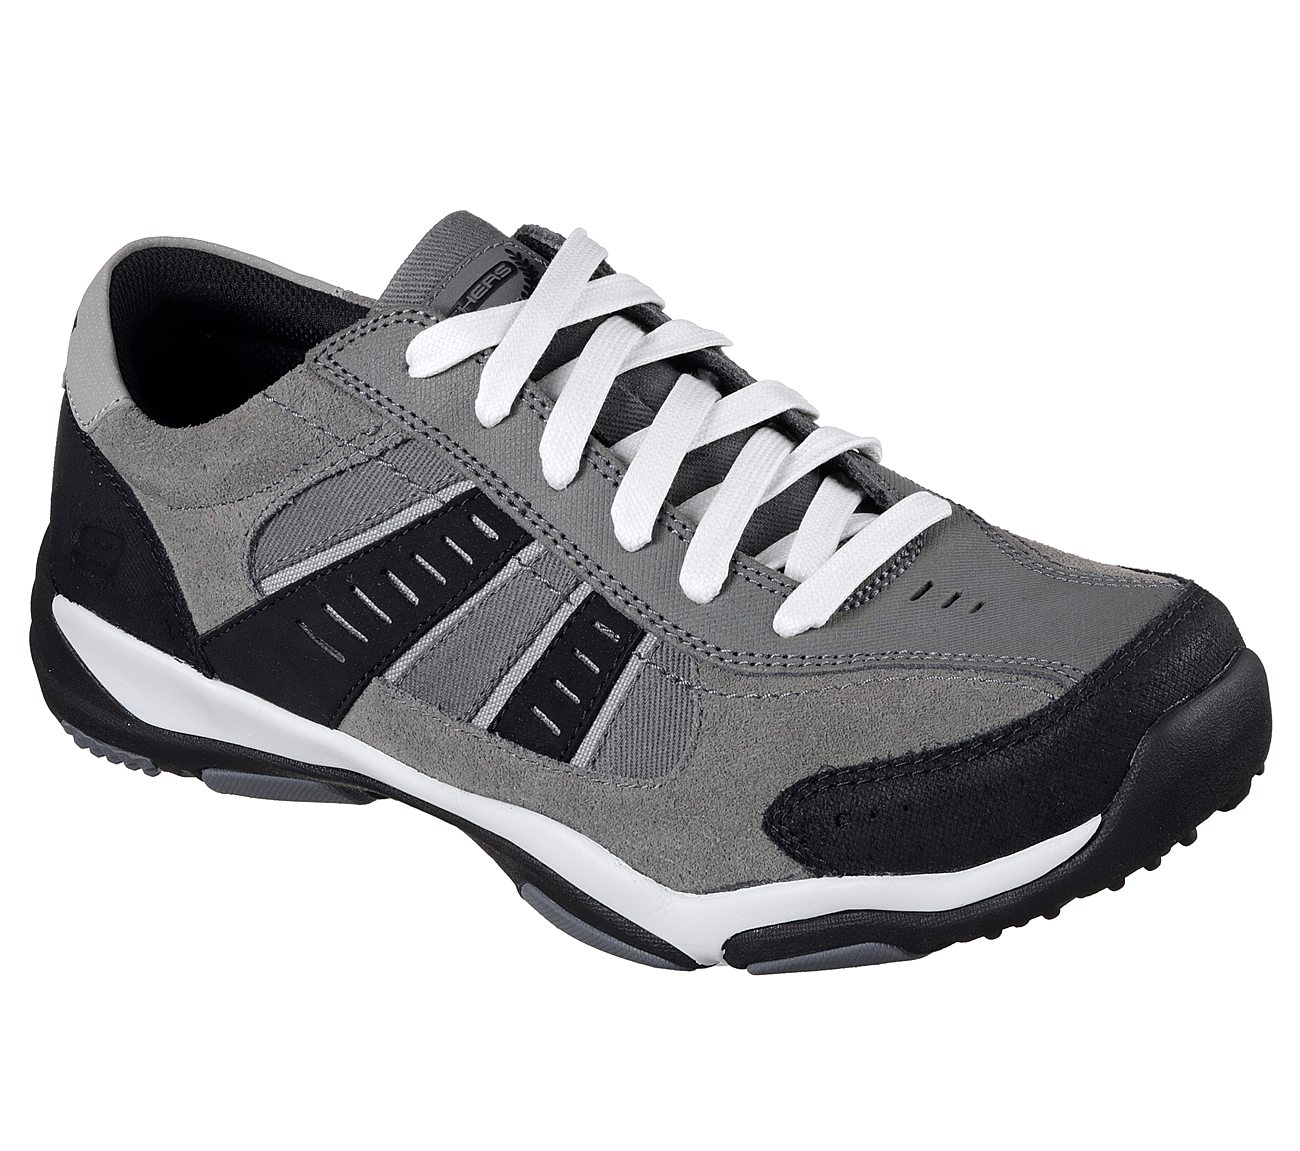 SKECHERS Larson - Sotes USA Casuals Shoes